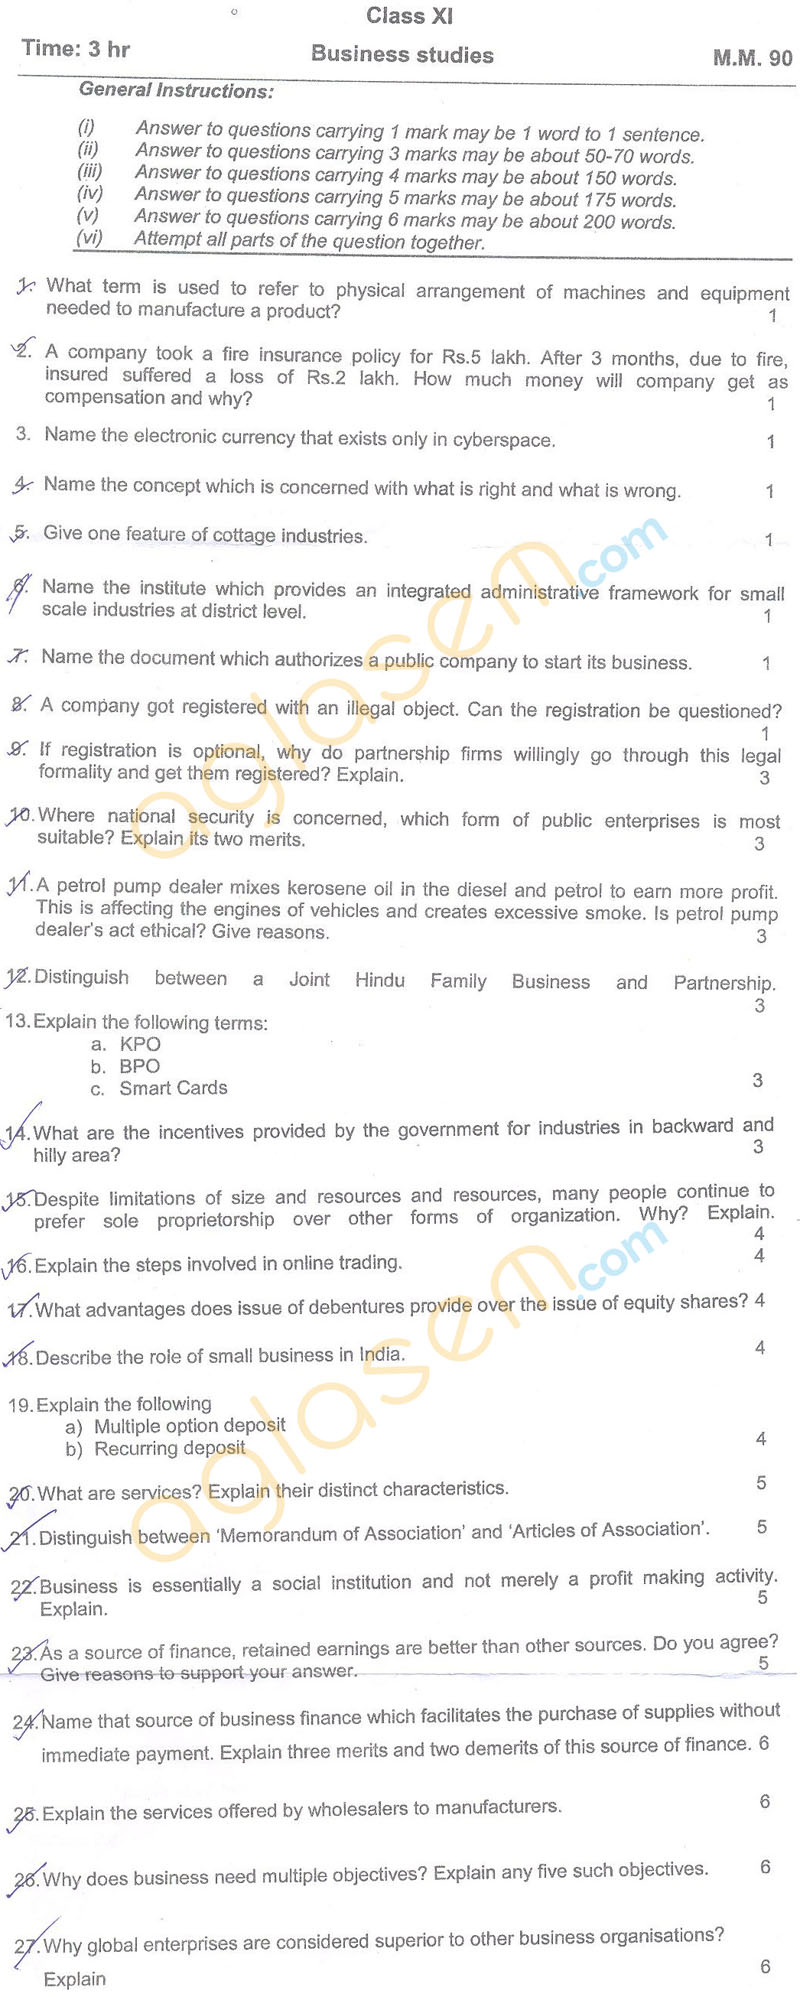 cbse class half yearly question papers business studies